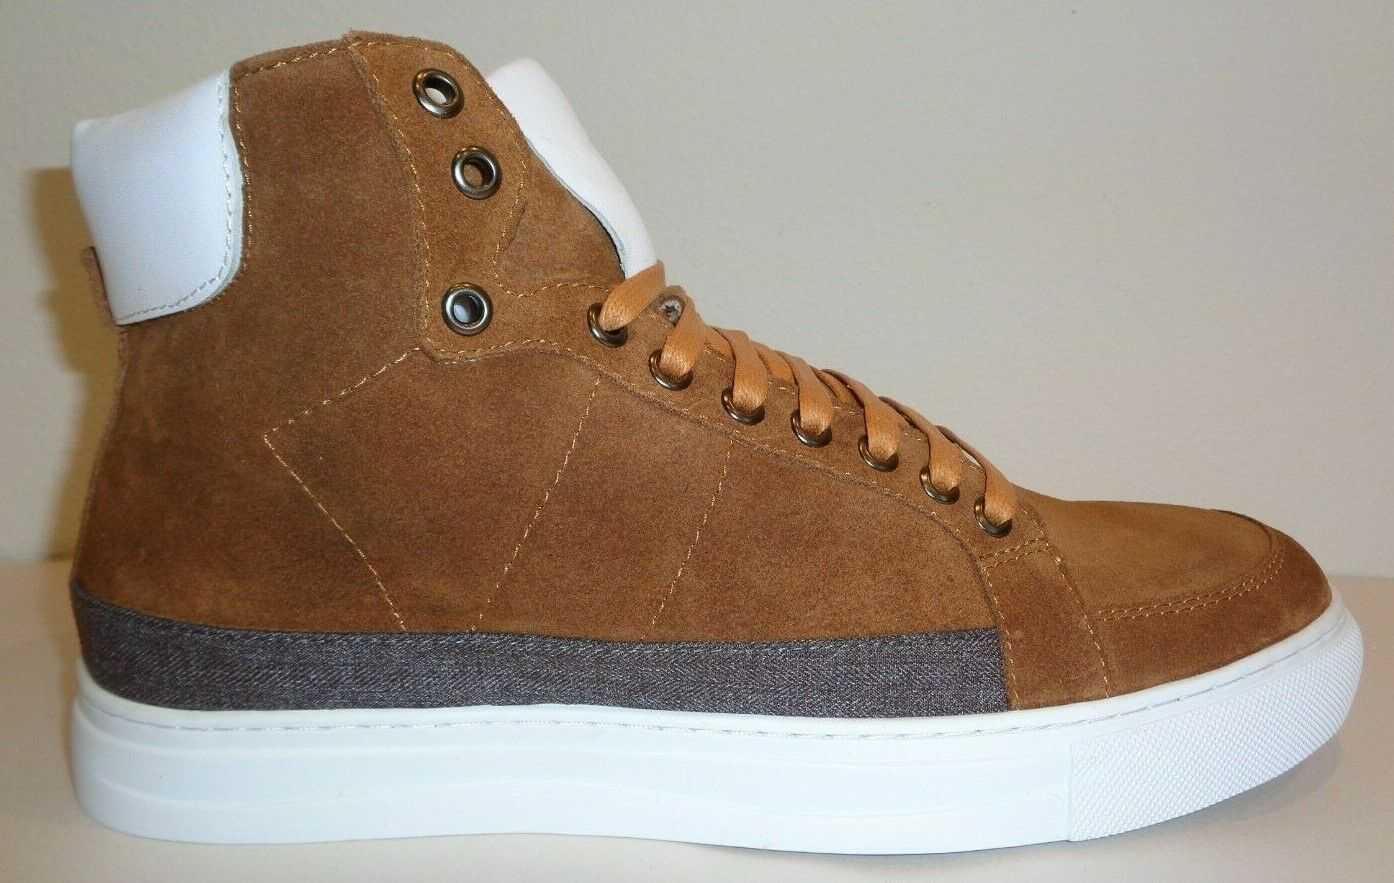 English Laundry Size 10 HIGHFIELD Cognac Suede Fashion Sneakers New Mens shoes